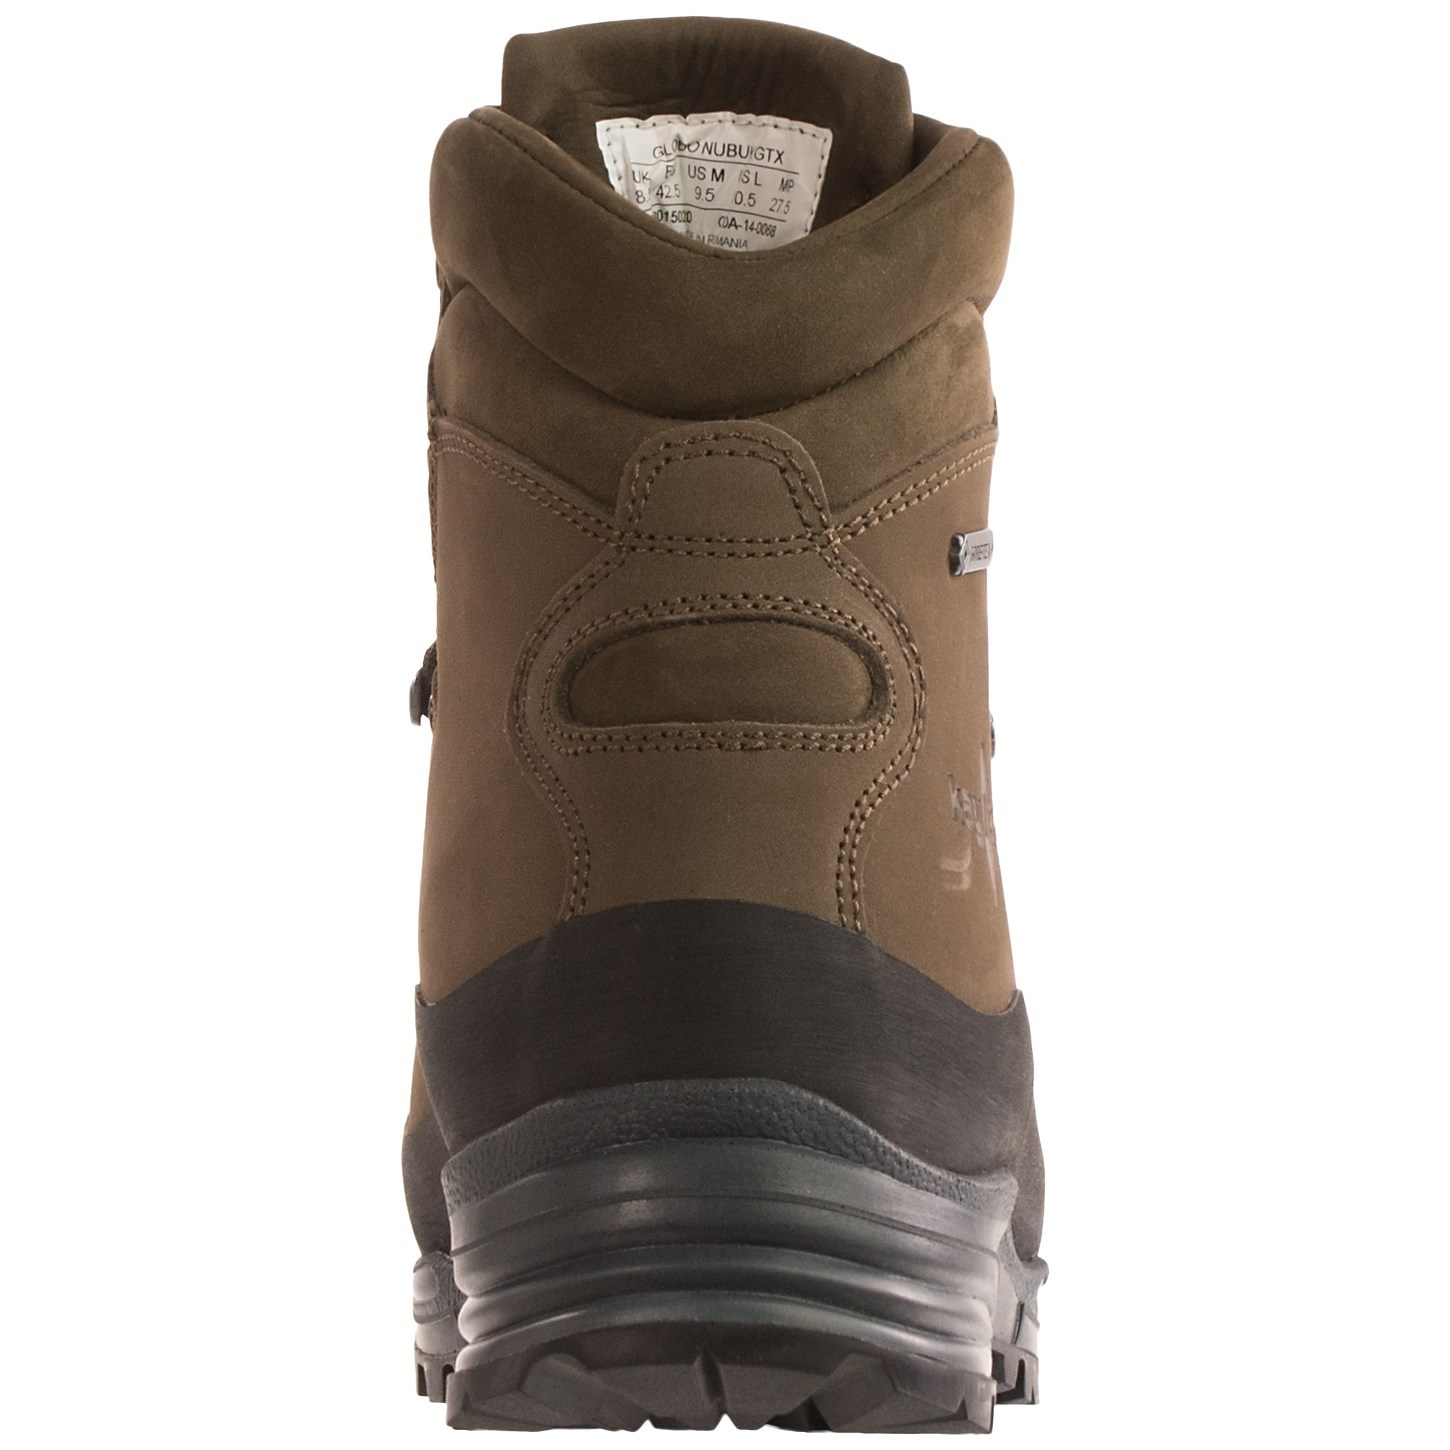 Kayland Globo Gore-Tex® Hiking Boots (For Men) - Save 43%